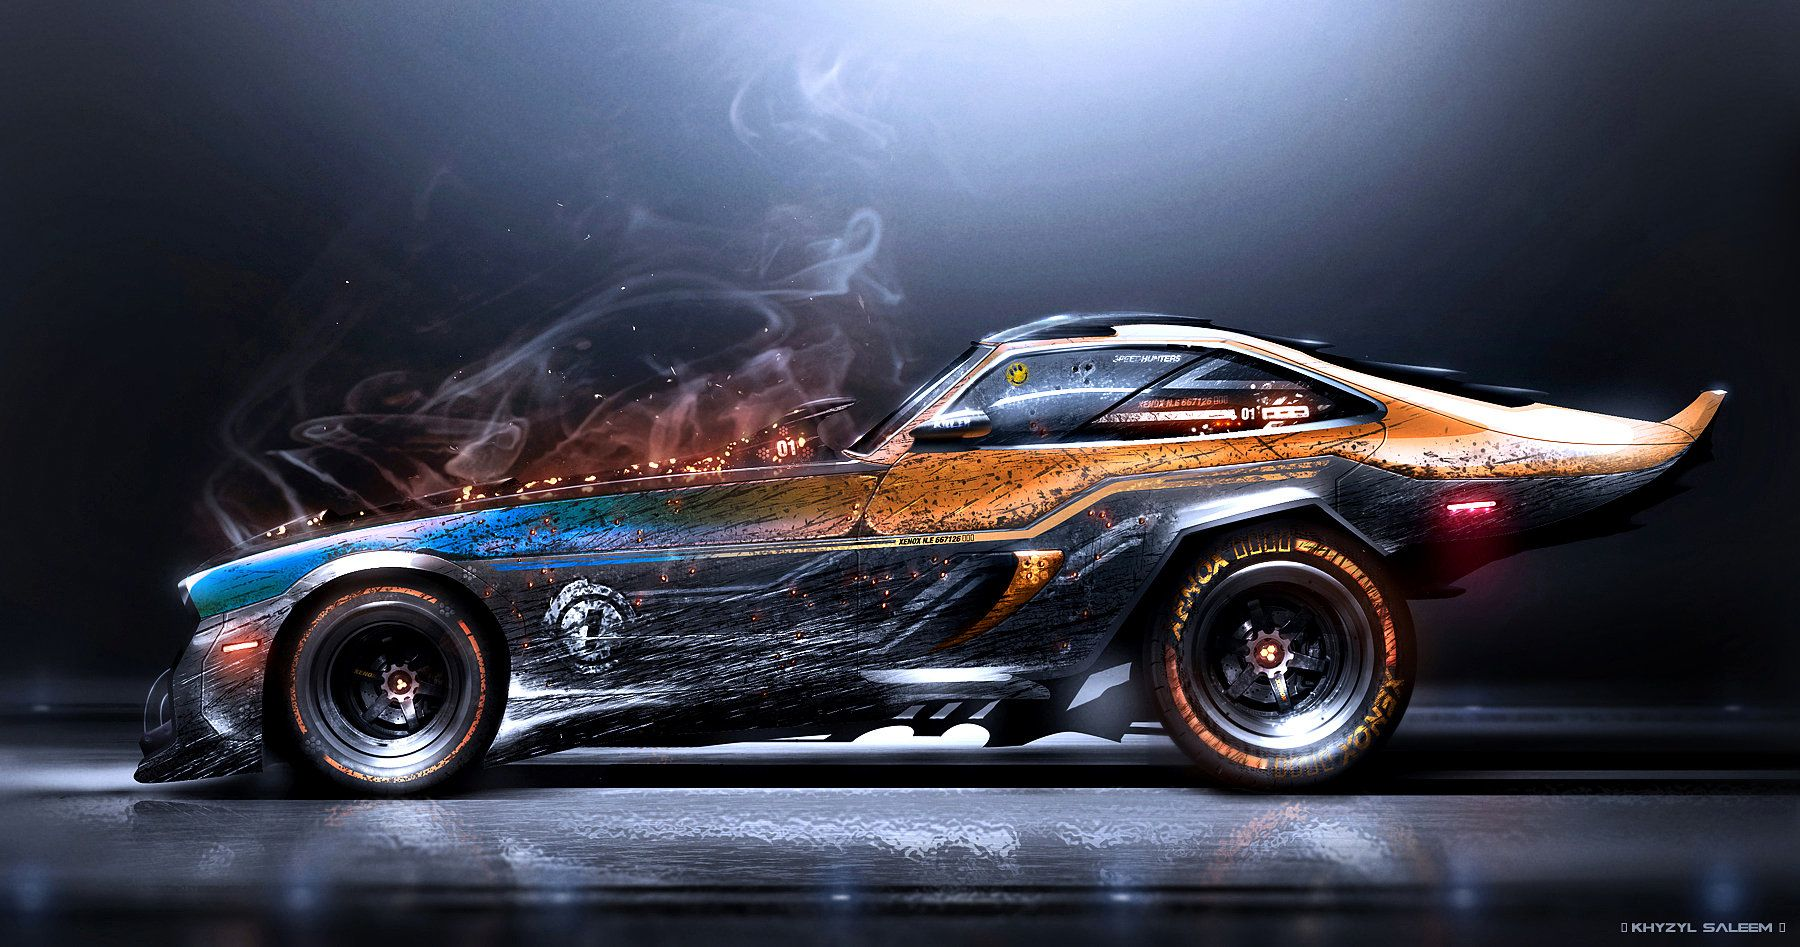 Car designs